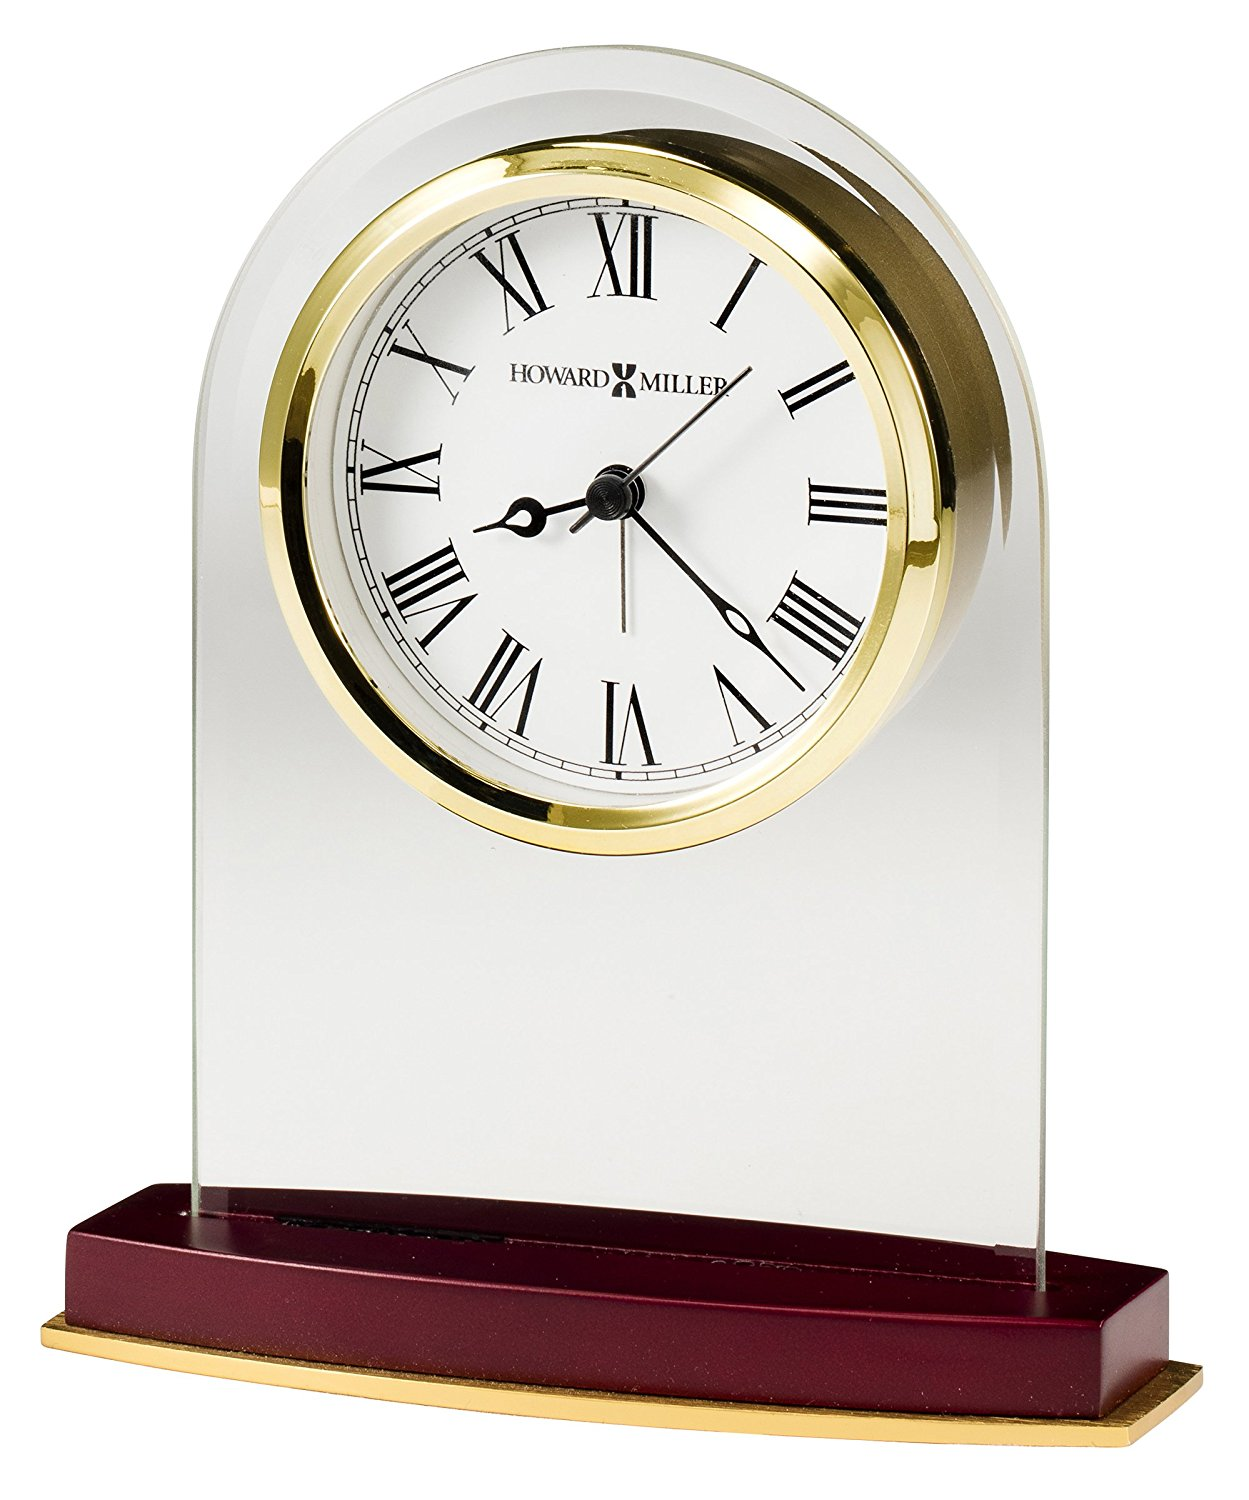 645786 Not Applicable 645-786 Anson, White dial is suspended within the glass and displays a Roman numeral dial with... by